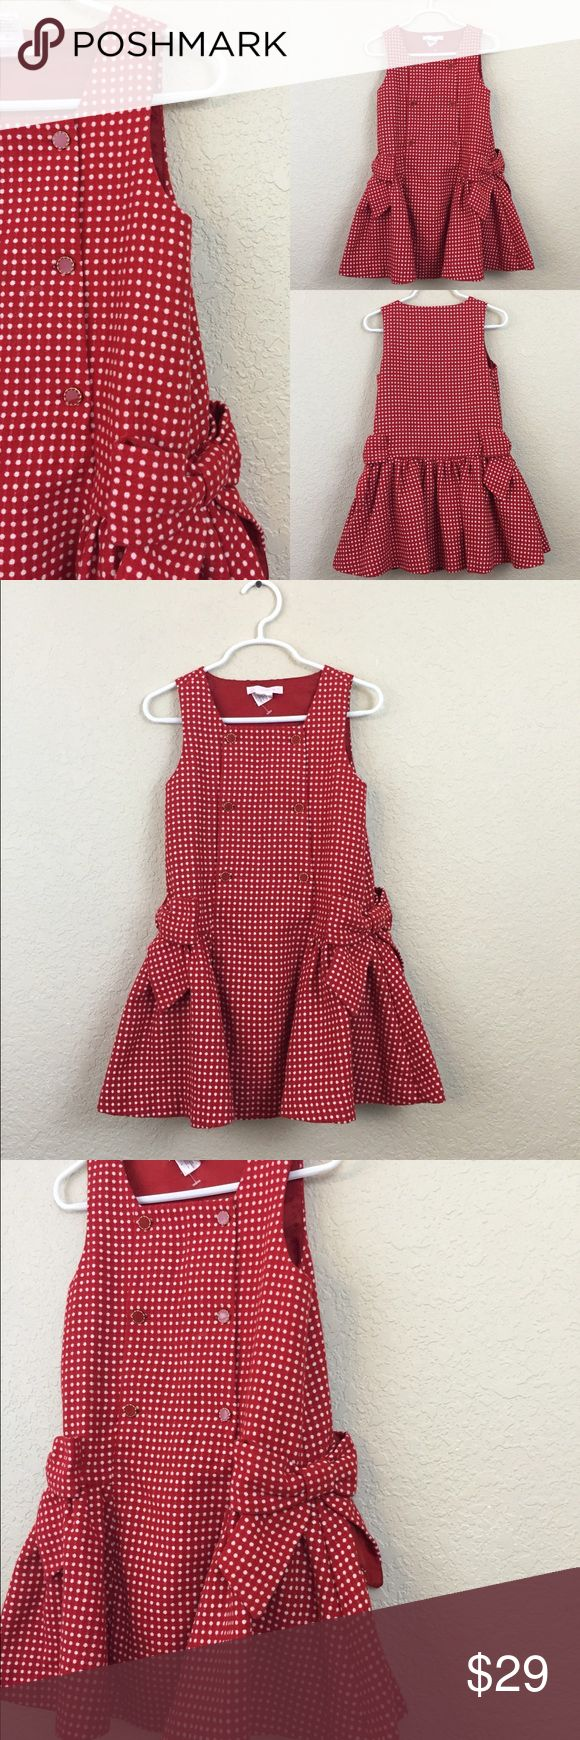 Janie and Jack Polka dot dress Jamie and Jack wool polka dot dress size 4 $79 pre loved Janie and Jack Dresses Formal